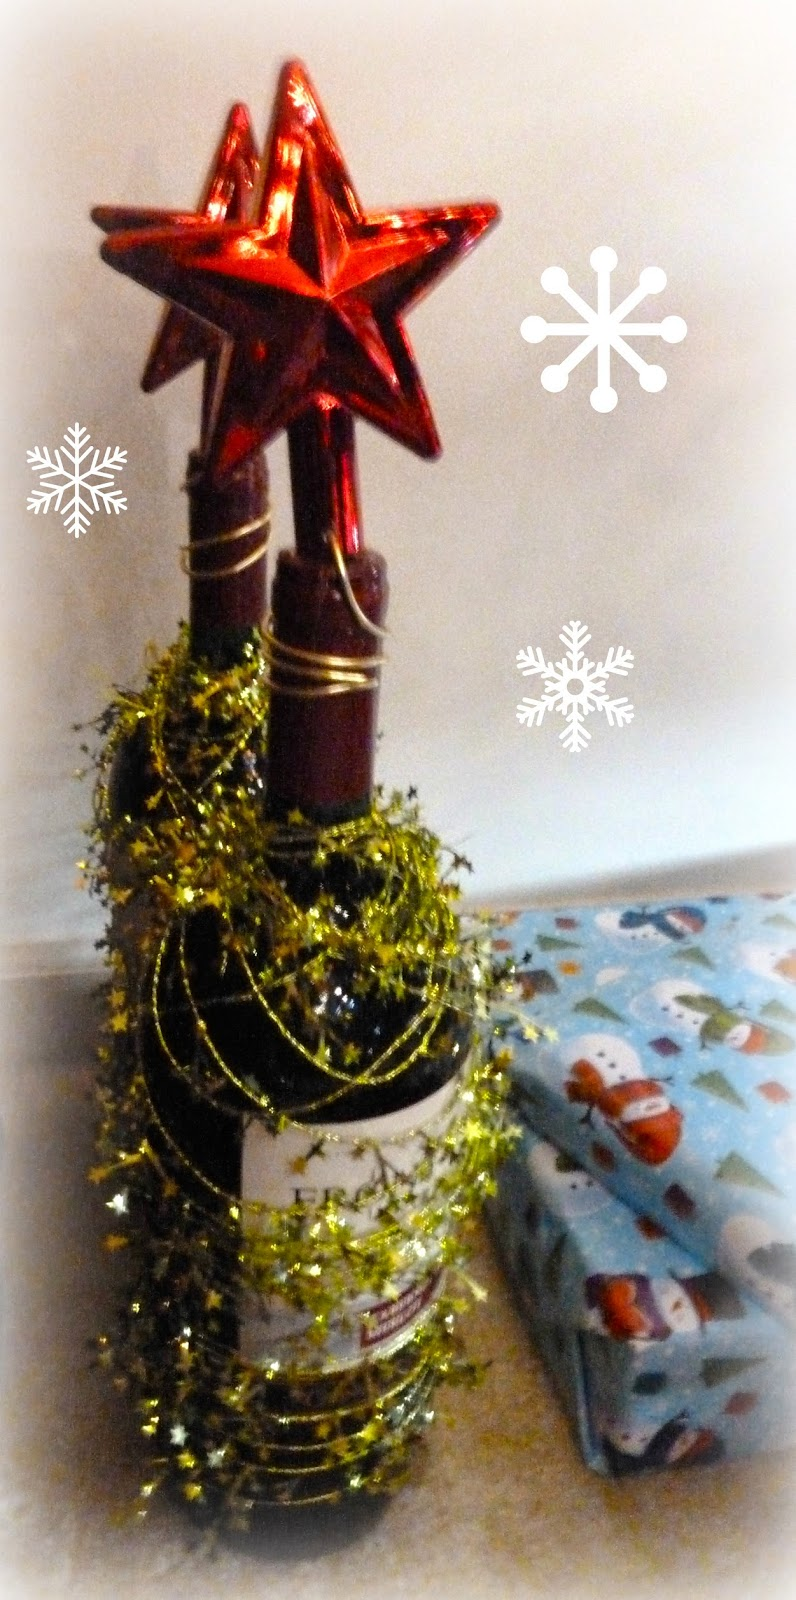 Wine Bottle Christmas Tree Craft.Make It Easy Crafts Christmas Tree Wine Bottle Hostess Gift